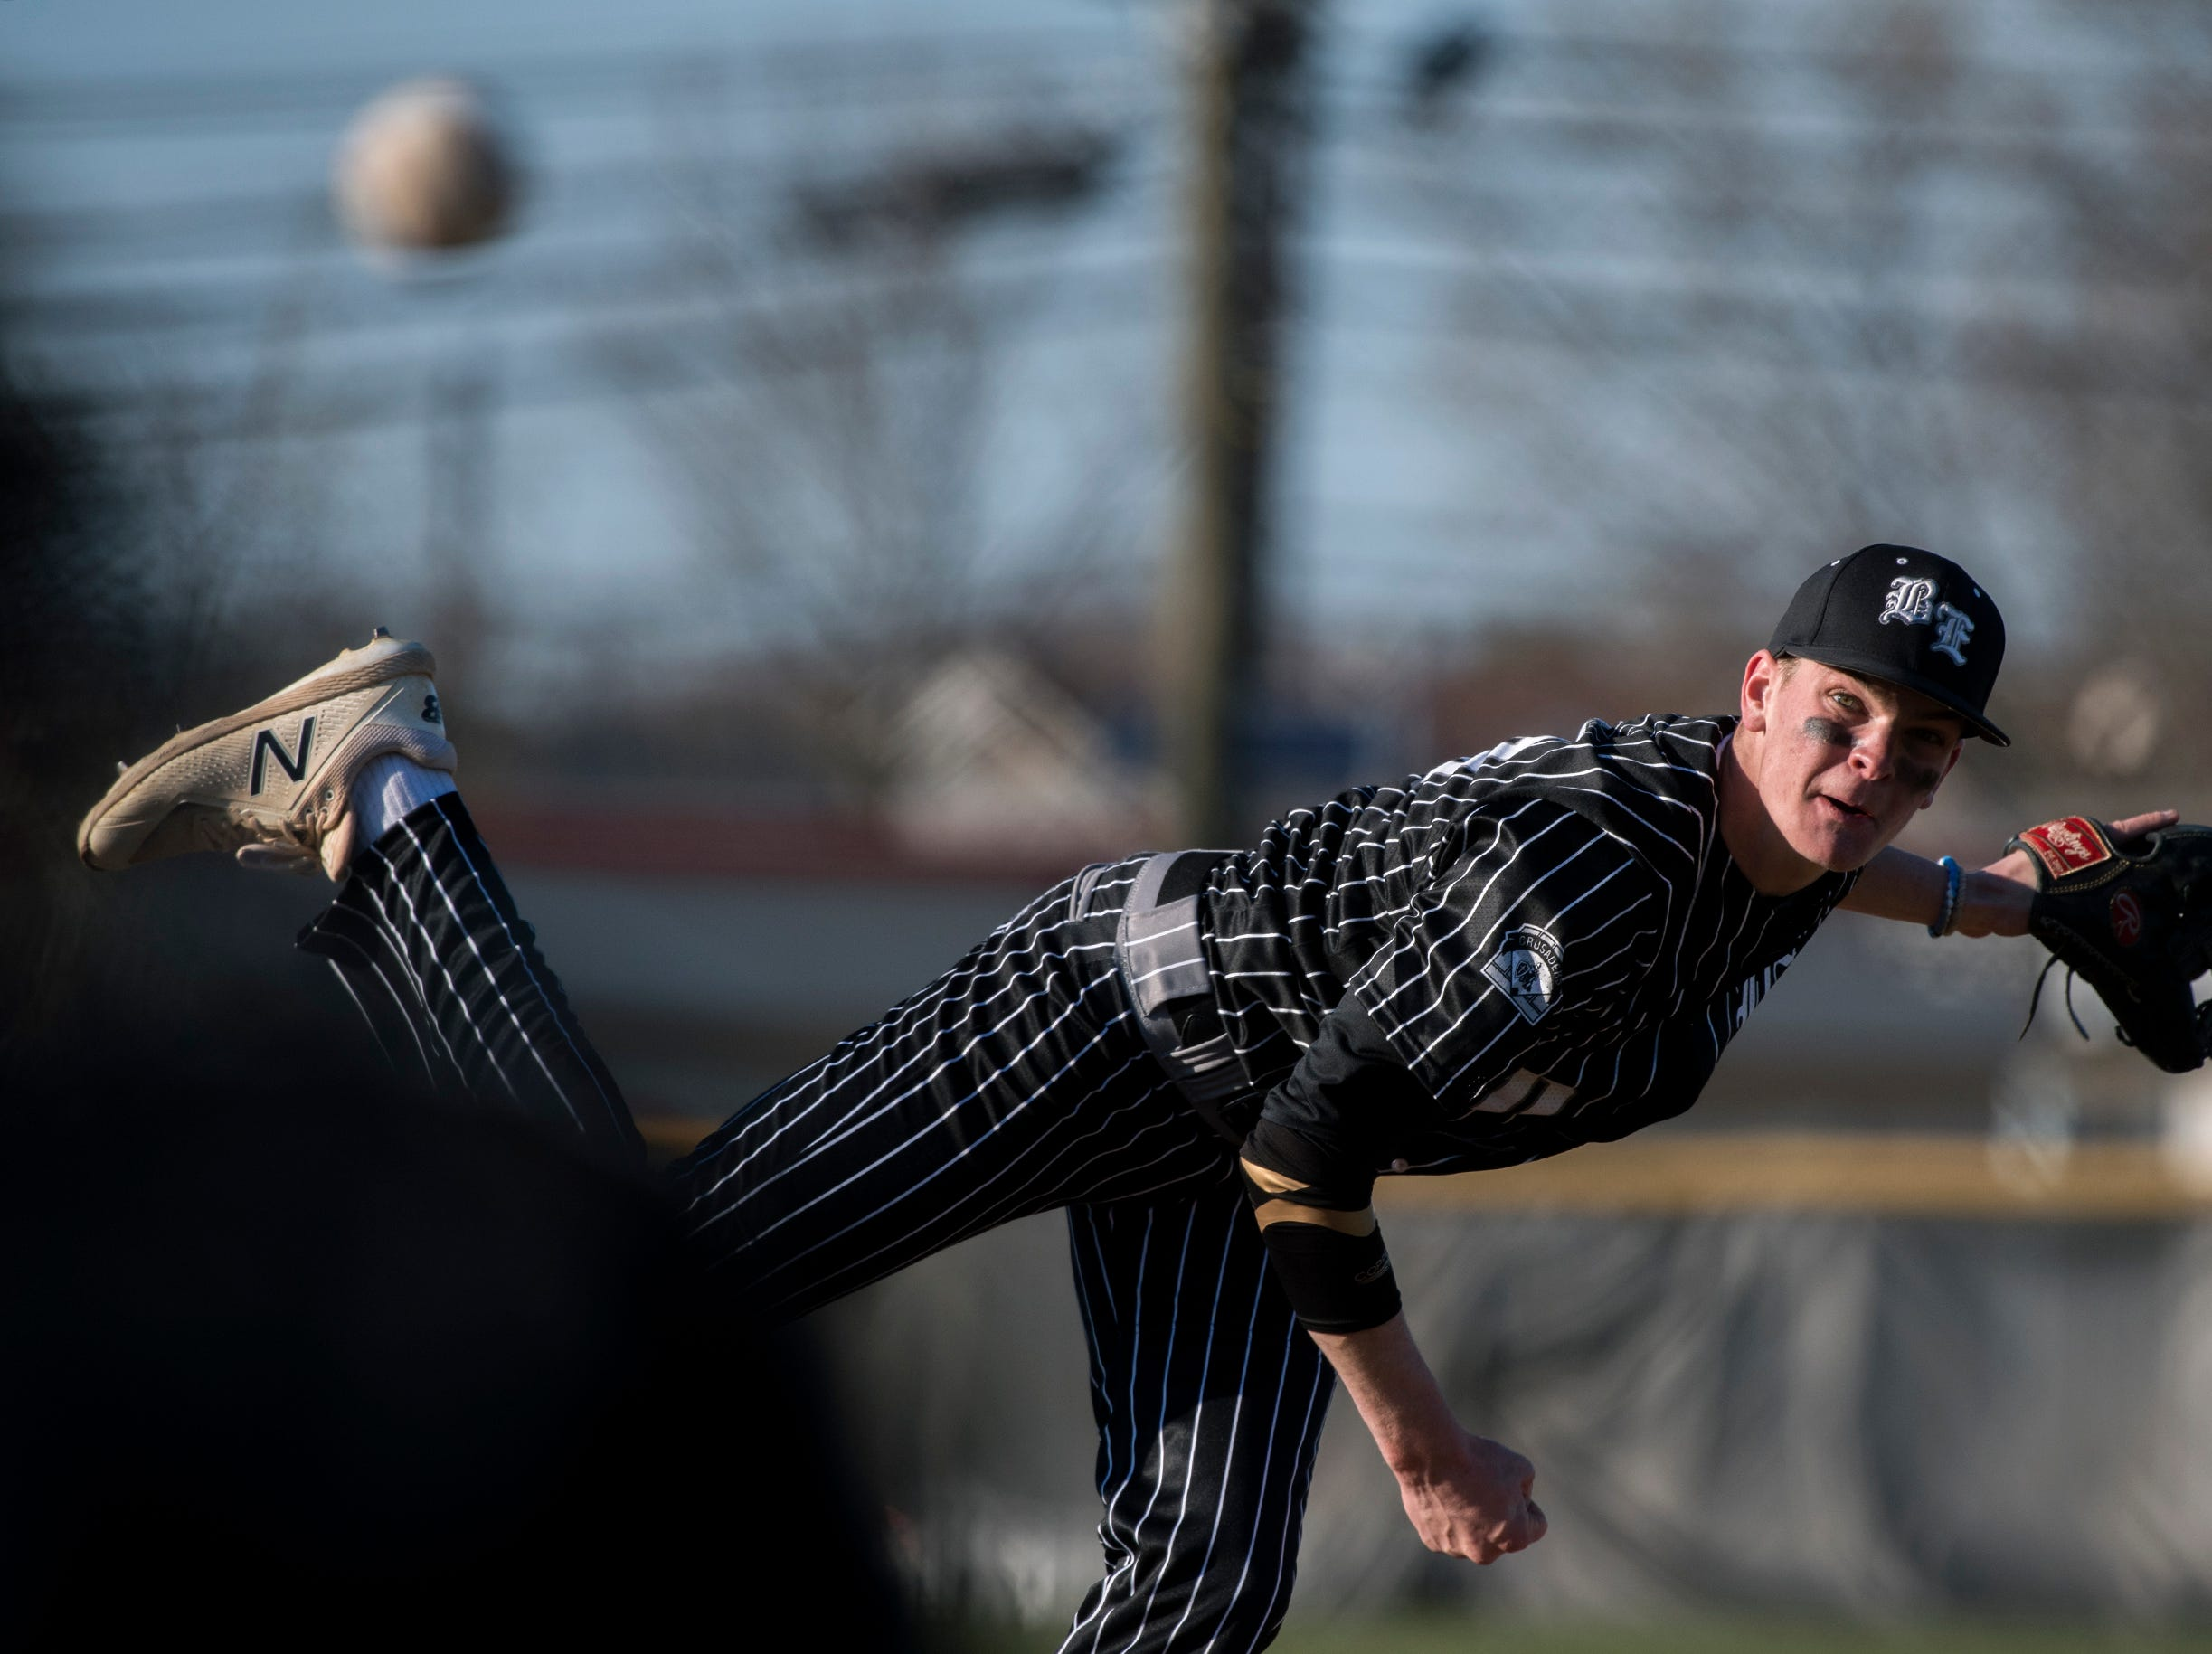 Bishop Eustace's Chuck Sanzio (20) delivers a pitch against Eastern Monday, April 1, 2019 in Pennsauken. Eustace won 12-0.